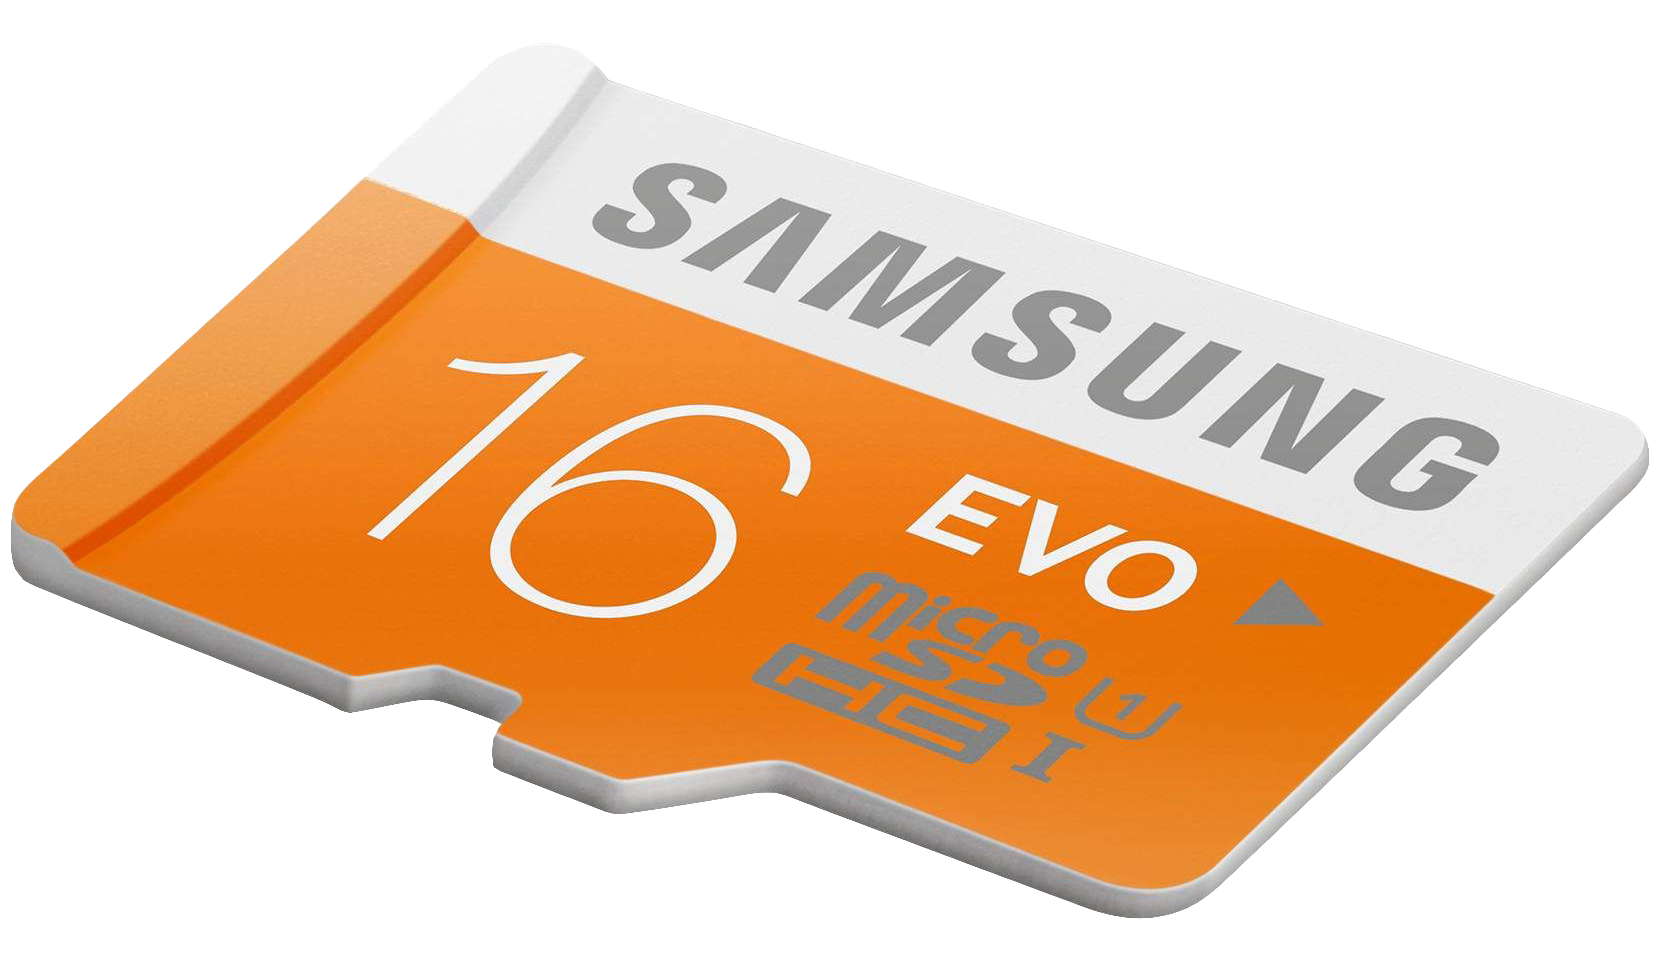 Memory clipart amazing. Samsung card png image